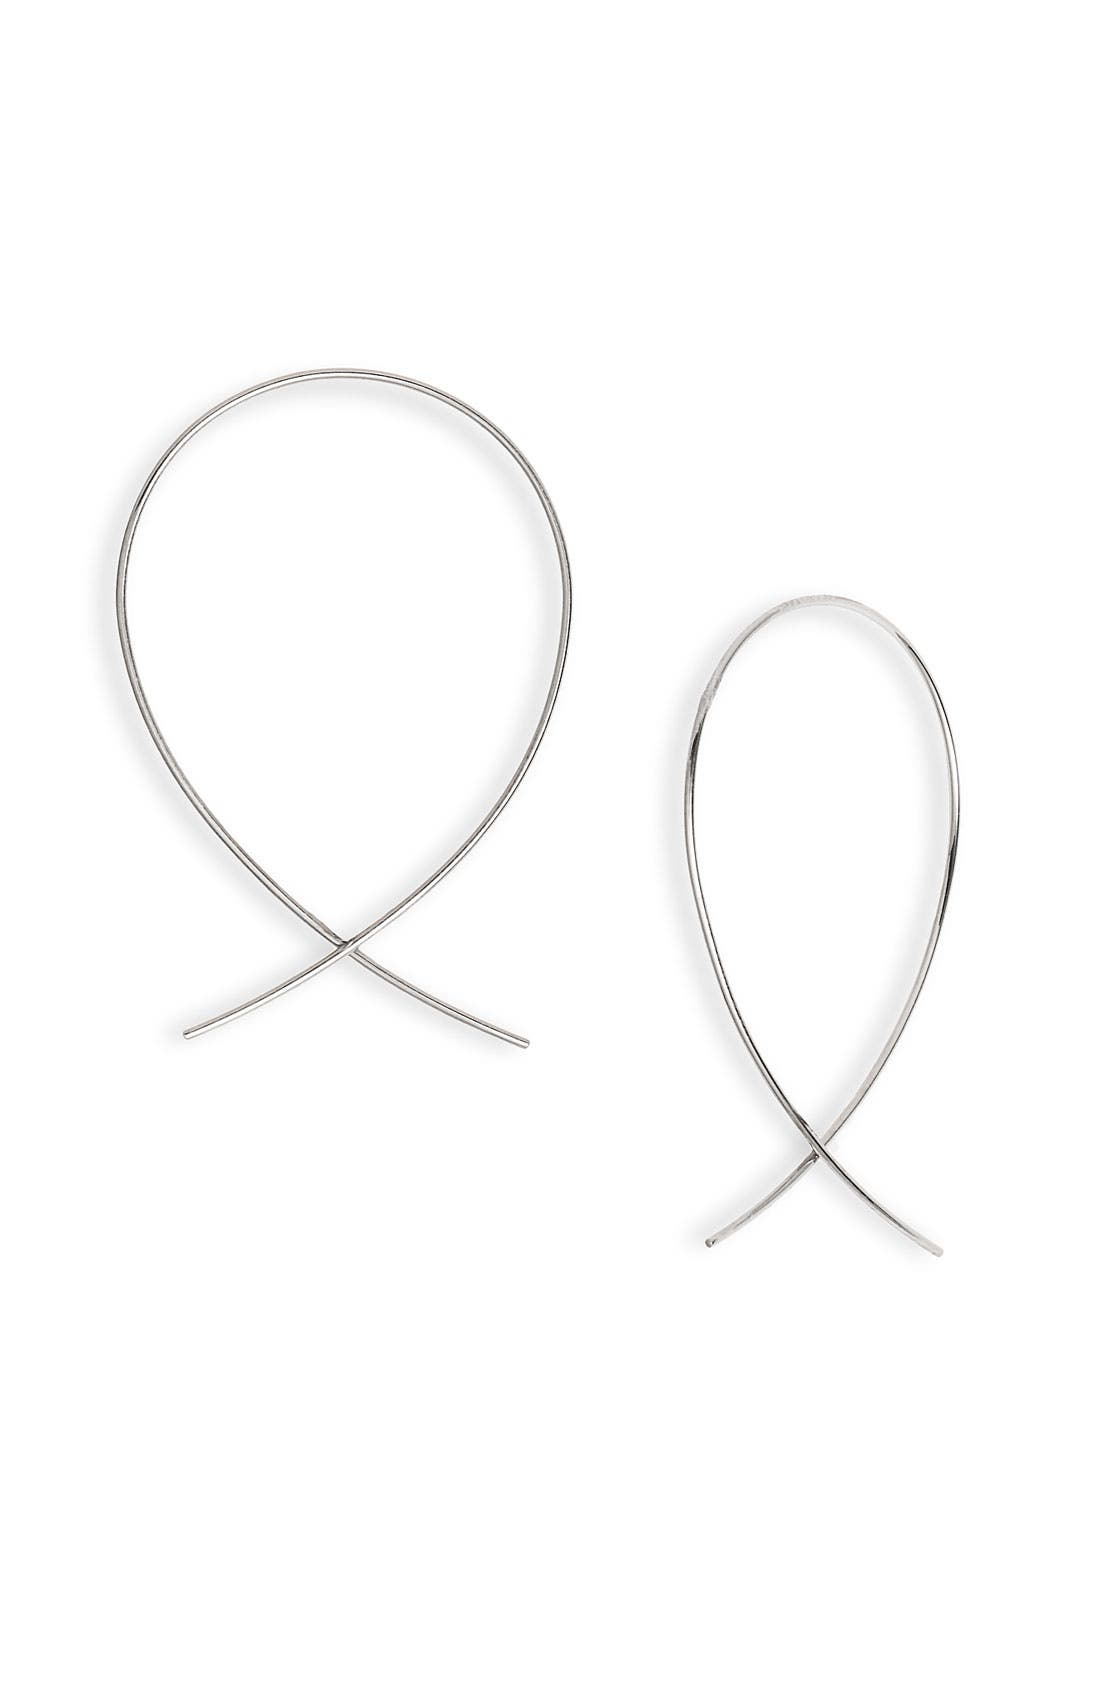 LANA JEWELRY 'Upside Down' Small Hoop Earrings, Main, color, WHITE GOLD